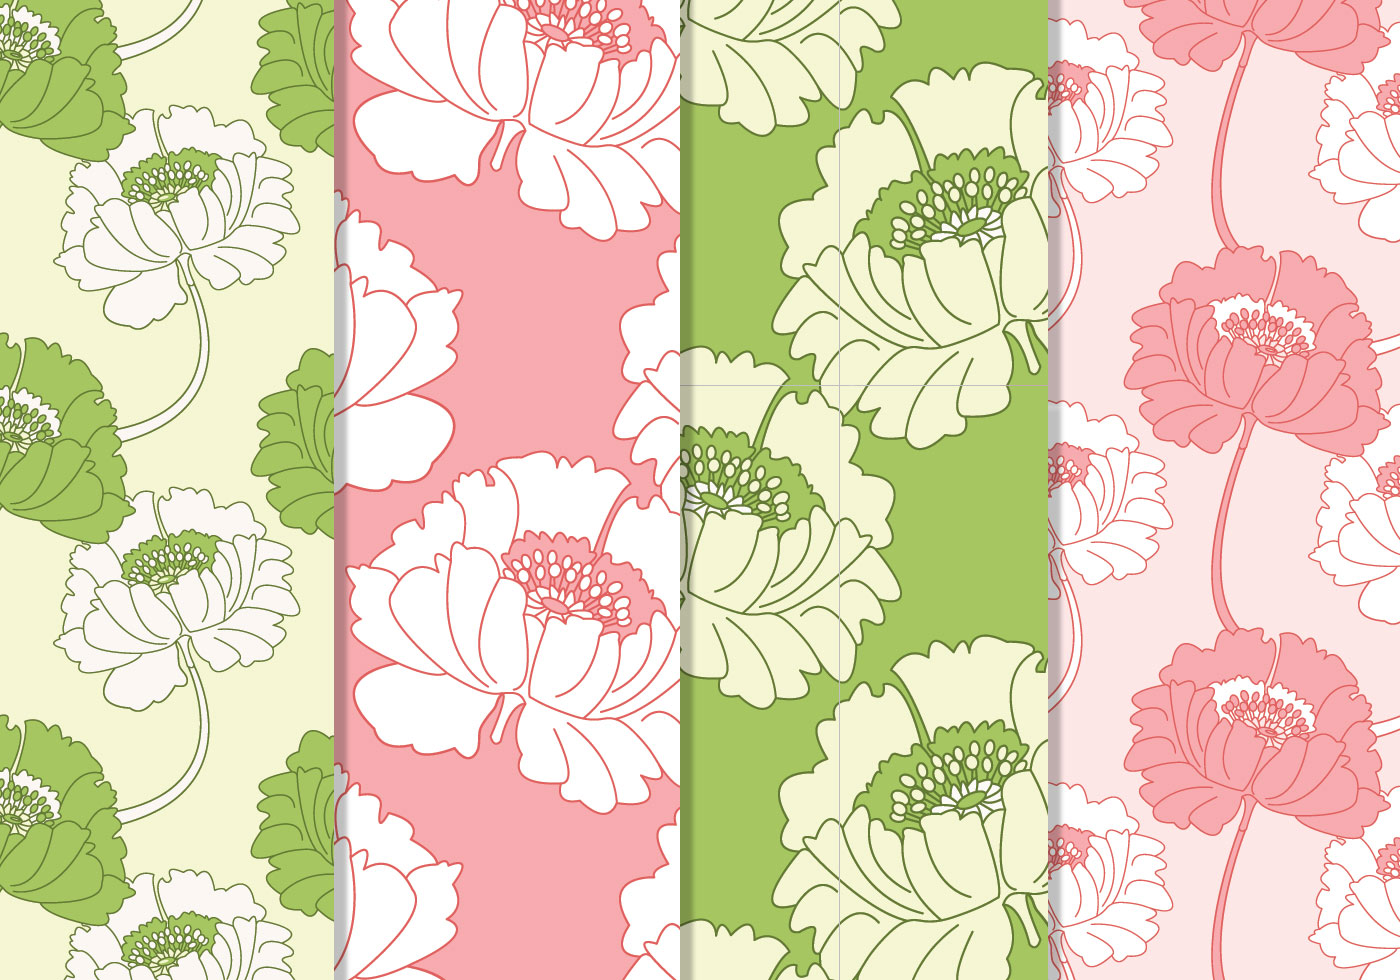 Seamless Pink And Green Floral Patterns Free Photoshop Brushes At Brusheezy